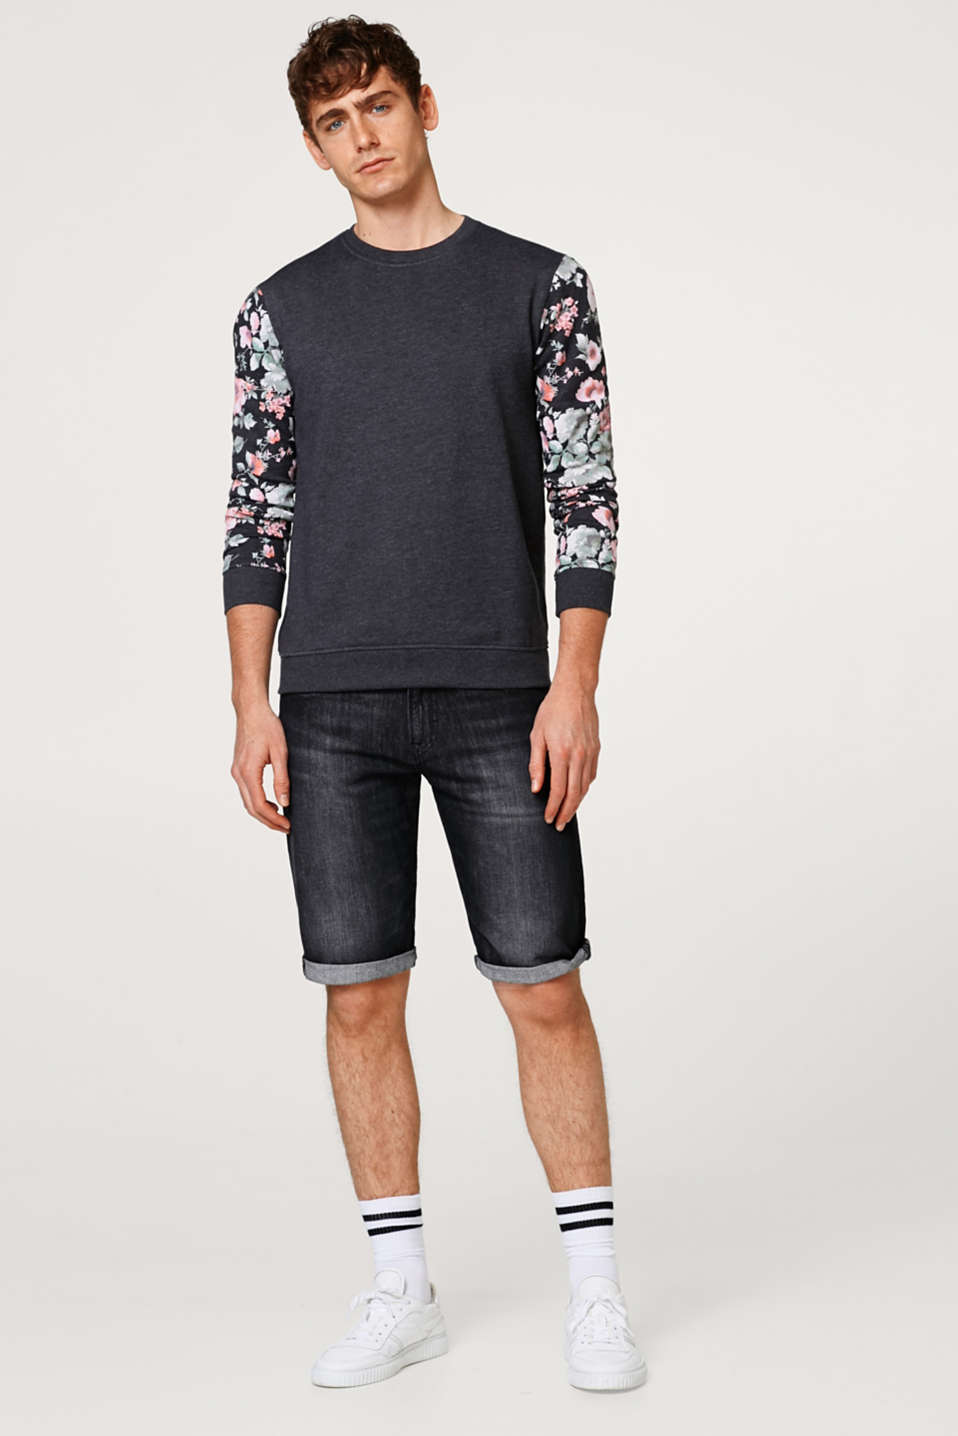 Sweatshirt with sleeves featuring a floral print